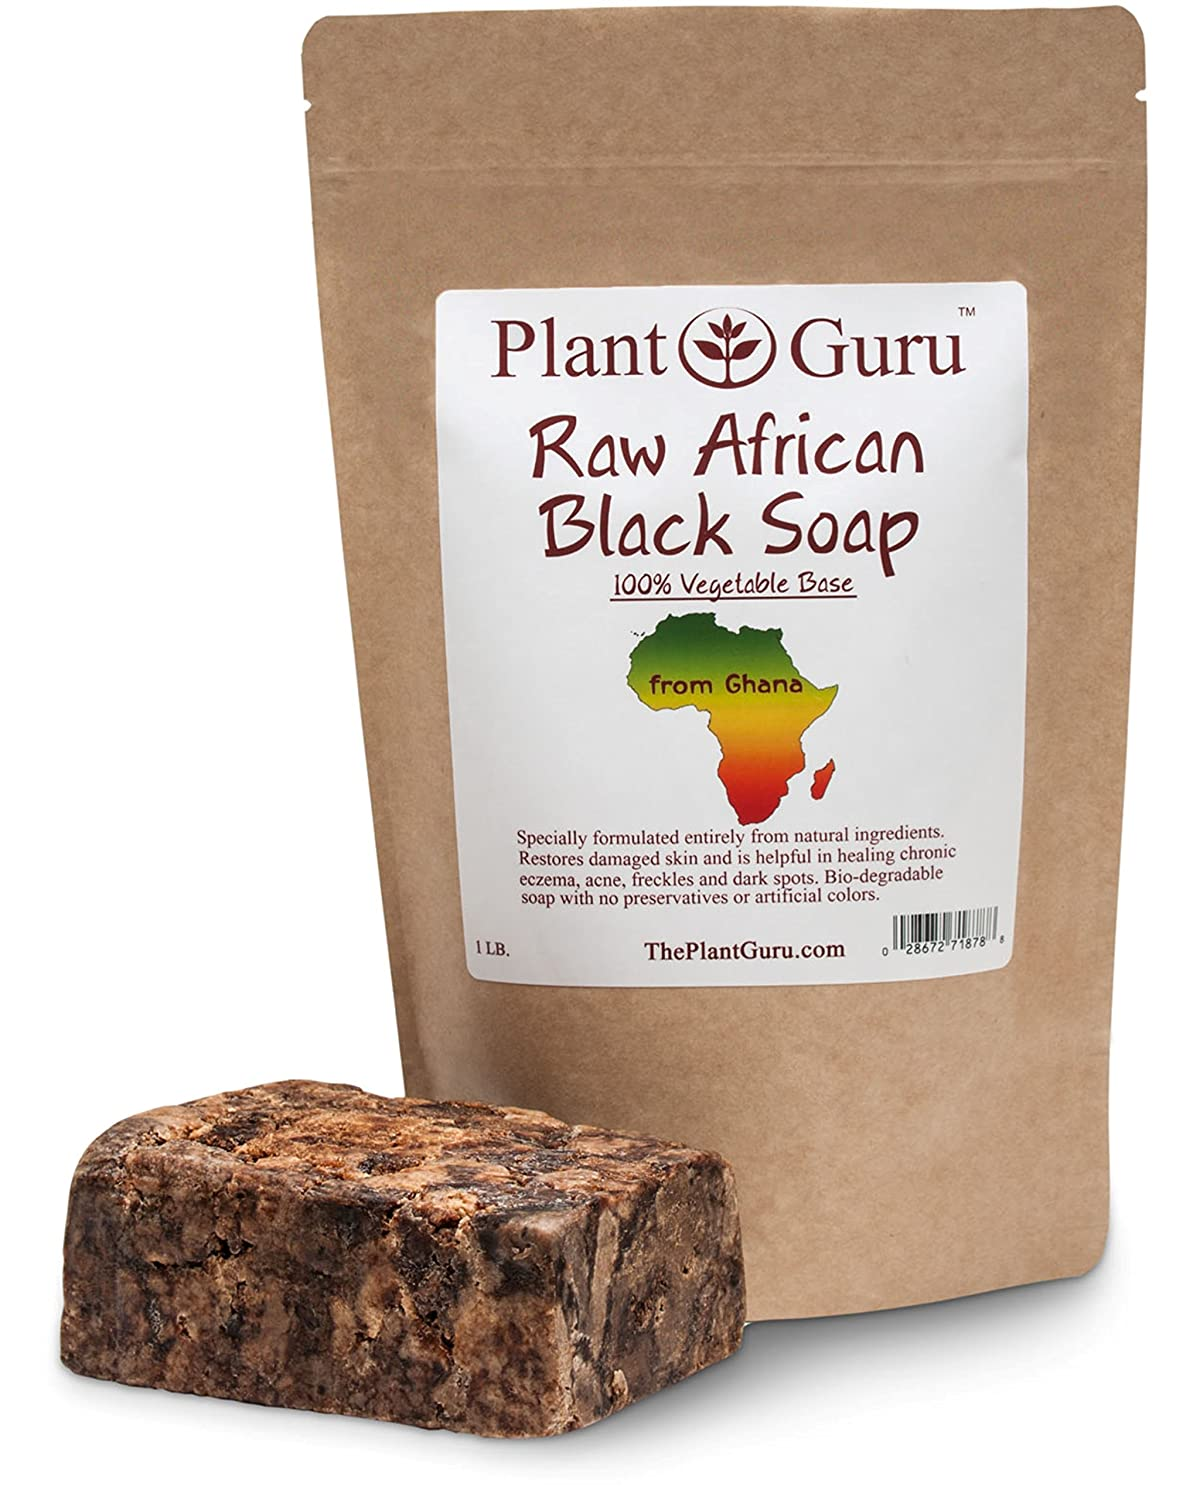 Raw African Black Soap Imported From Ghana - 100% Natural Acne Treatment, Aids Against Eczema & Psoriasis, Dry Skin, Scar Removal, Pimples and Blackhead, Face & Body Wash Plant Guru PG-BS-1lb